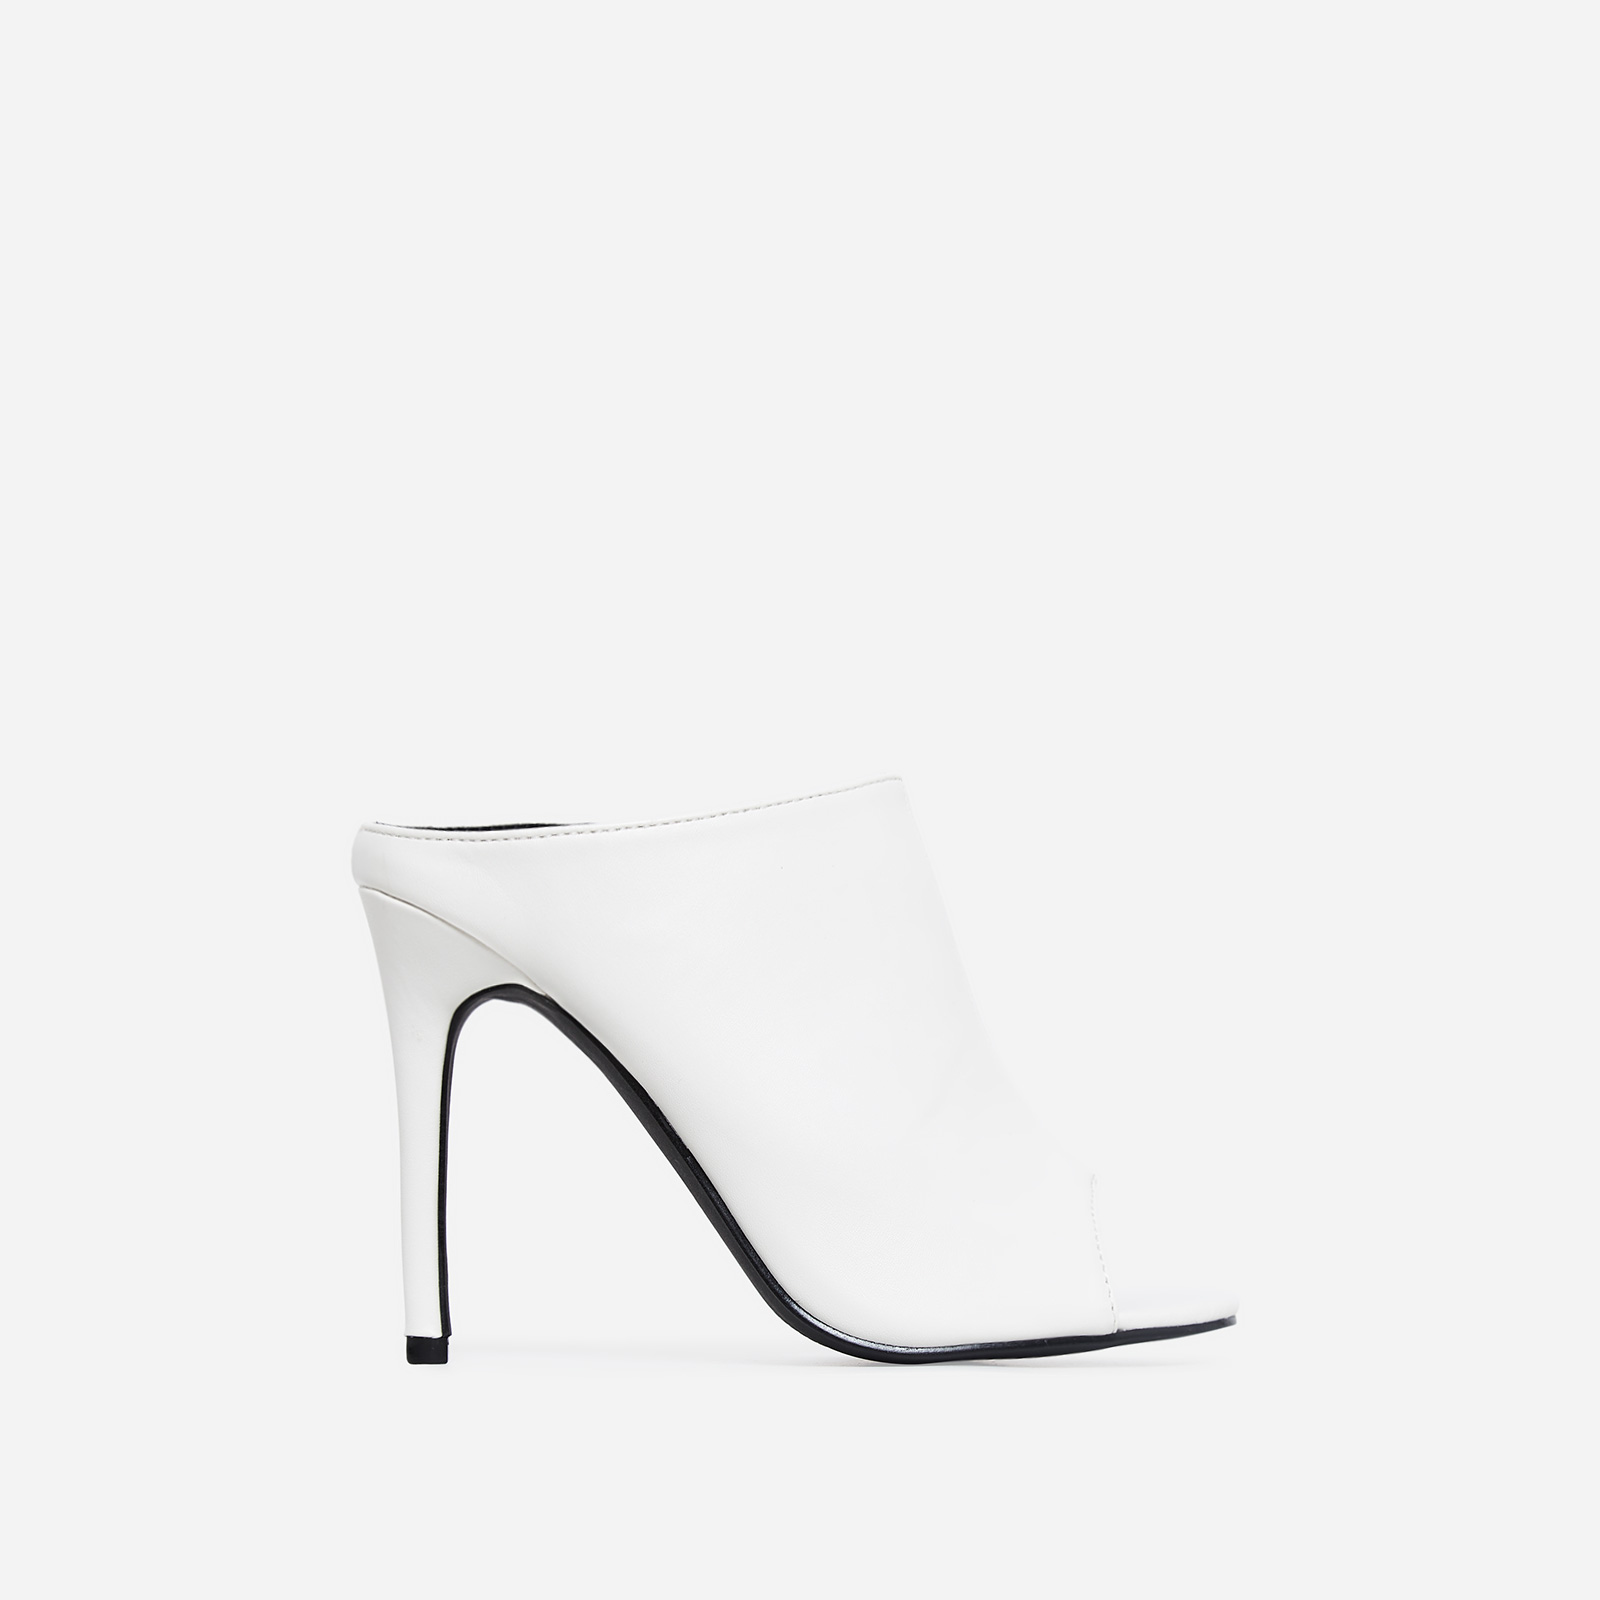 Downtown Peep Toe Mule In White Faux Leather